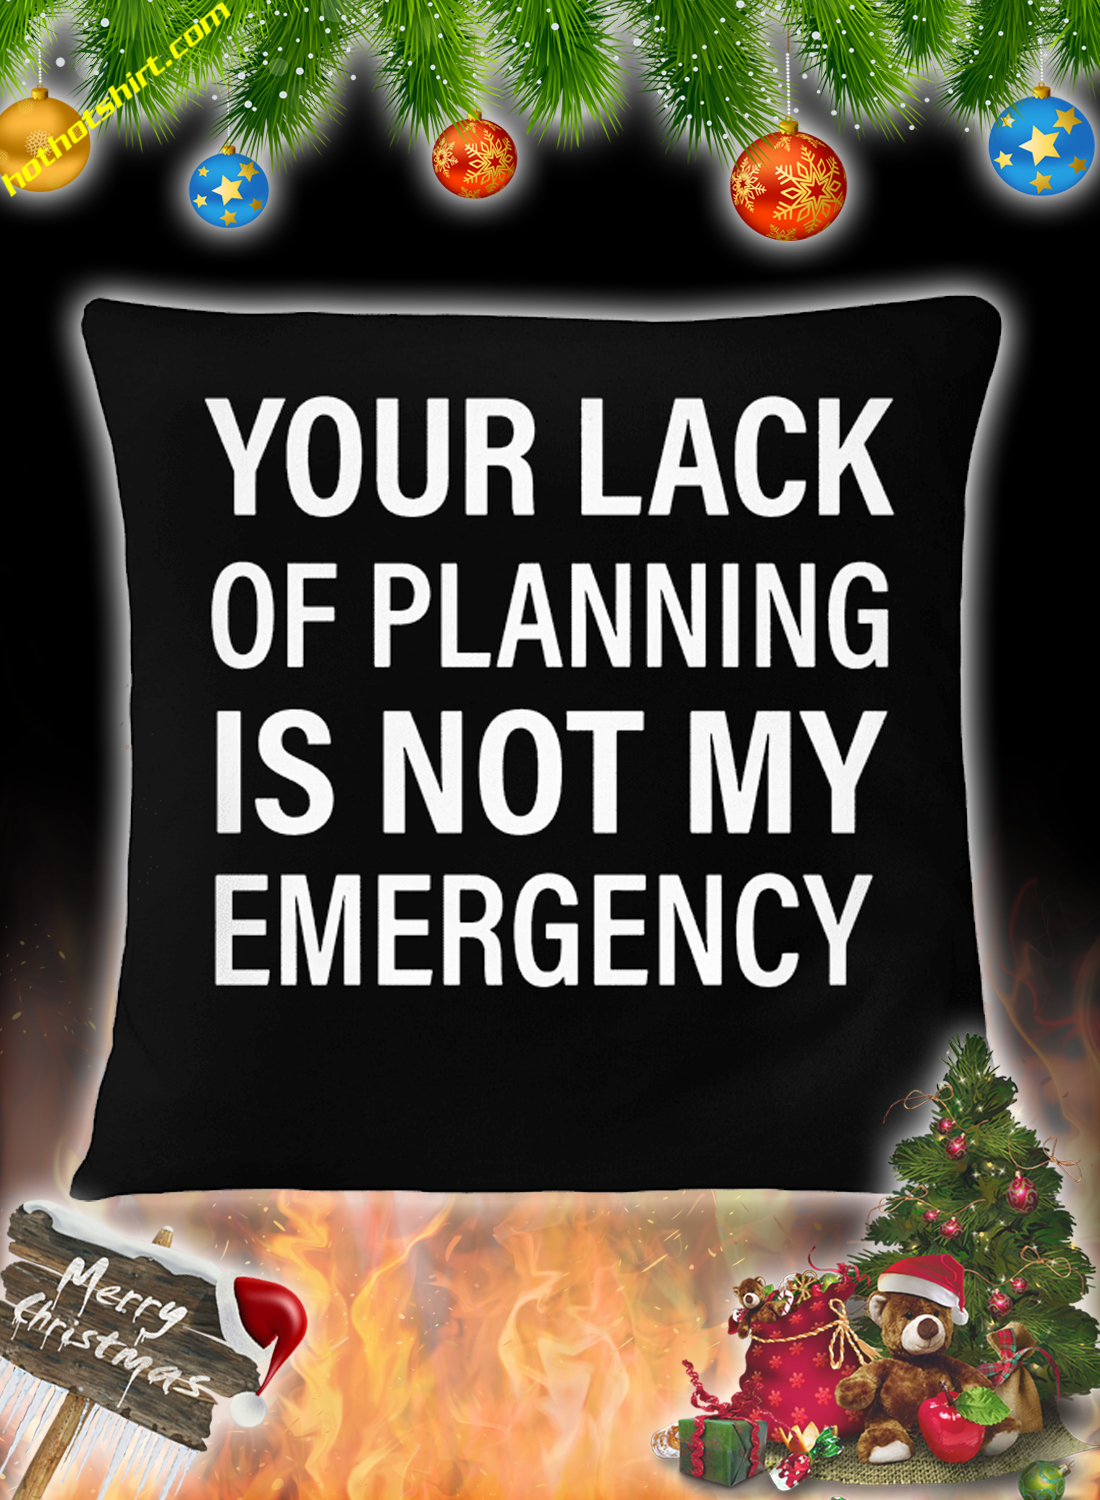 Your lack of planning is not my emergency mug 3